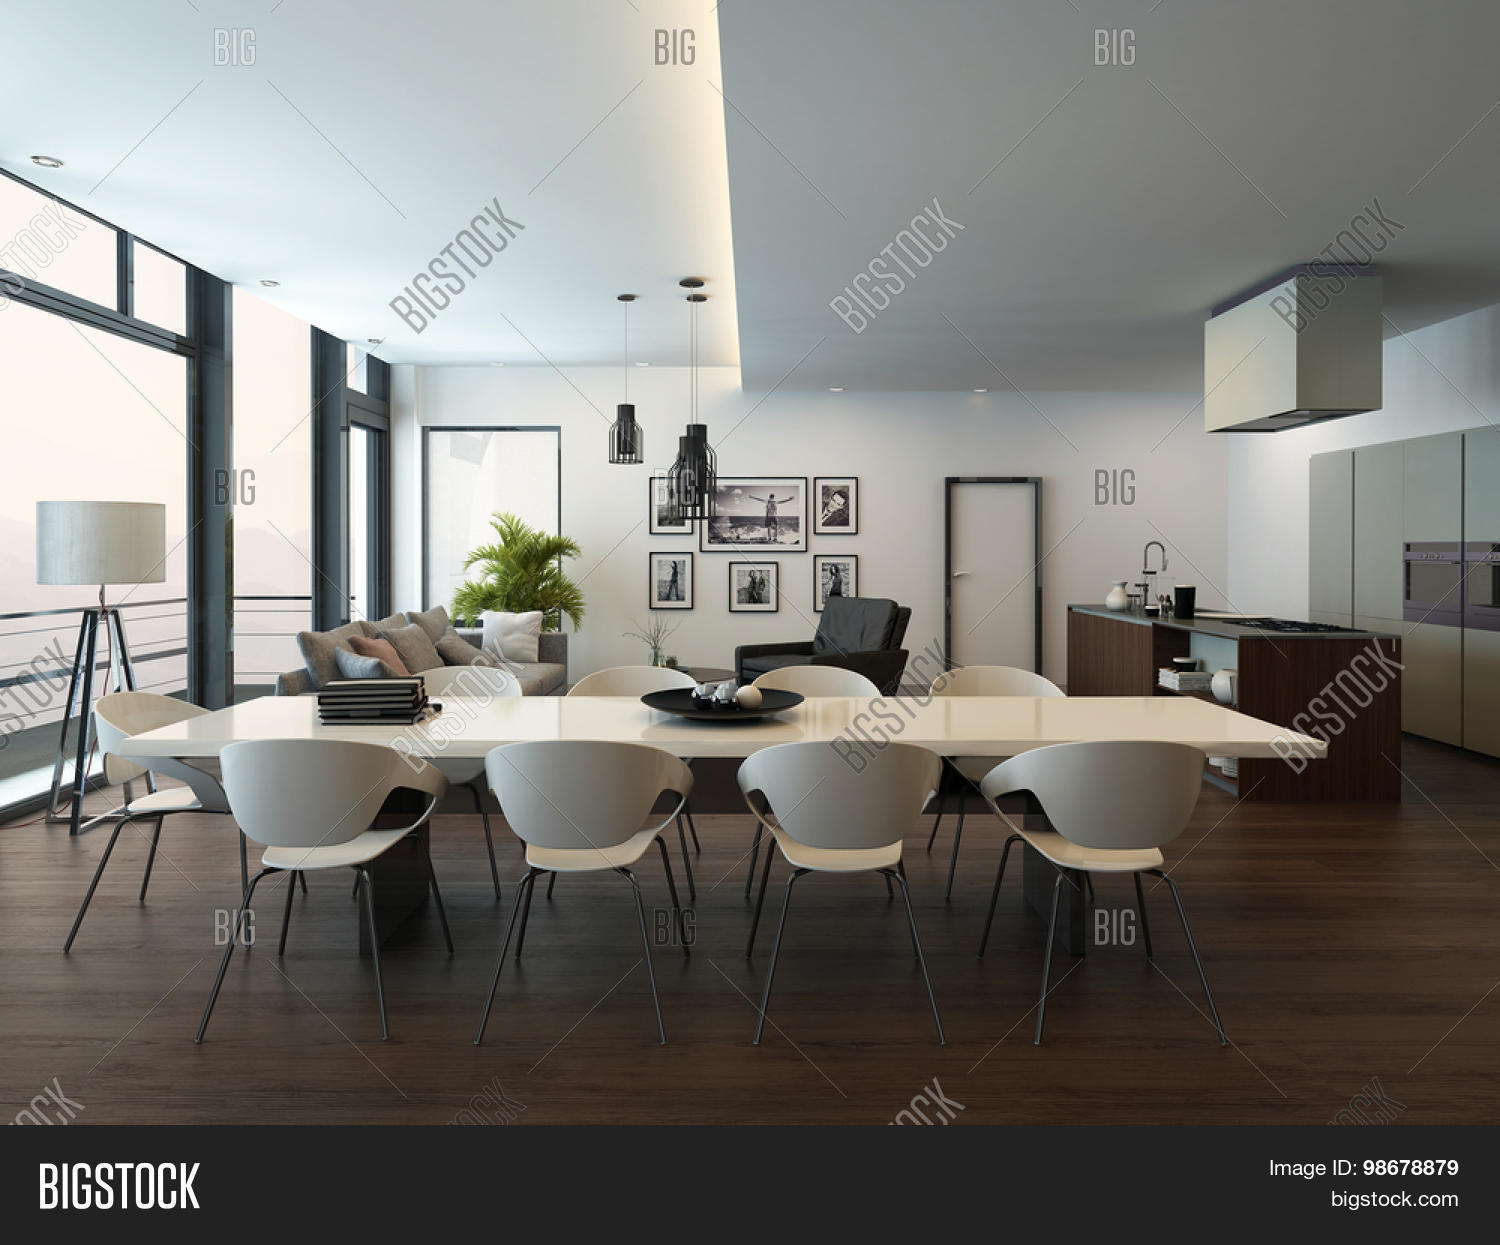 Apartment living room interior with parquet floor white dining table